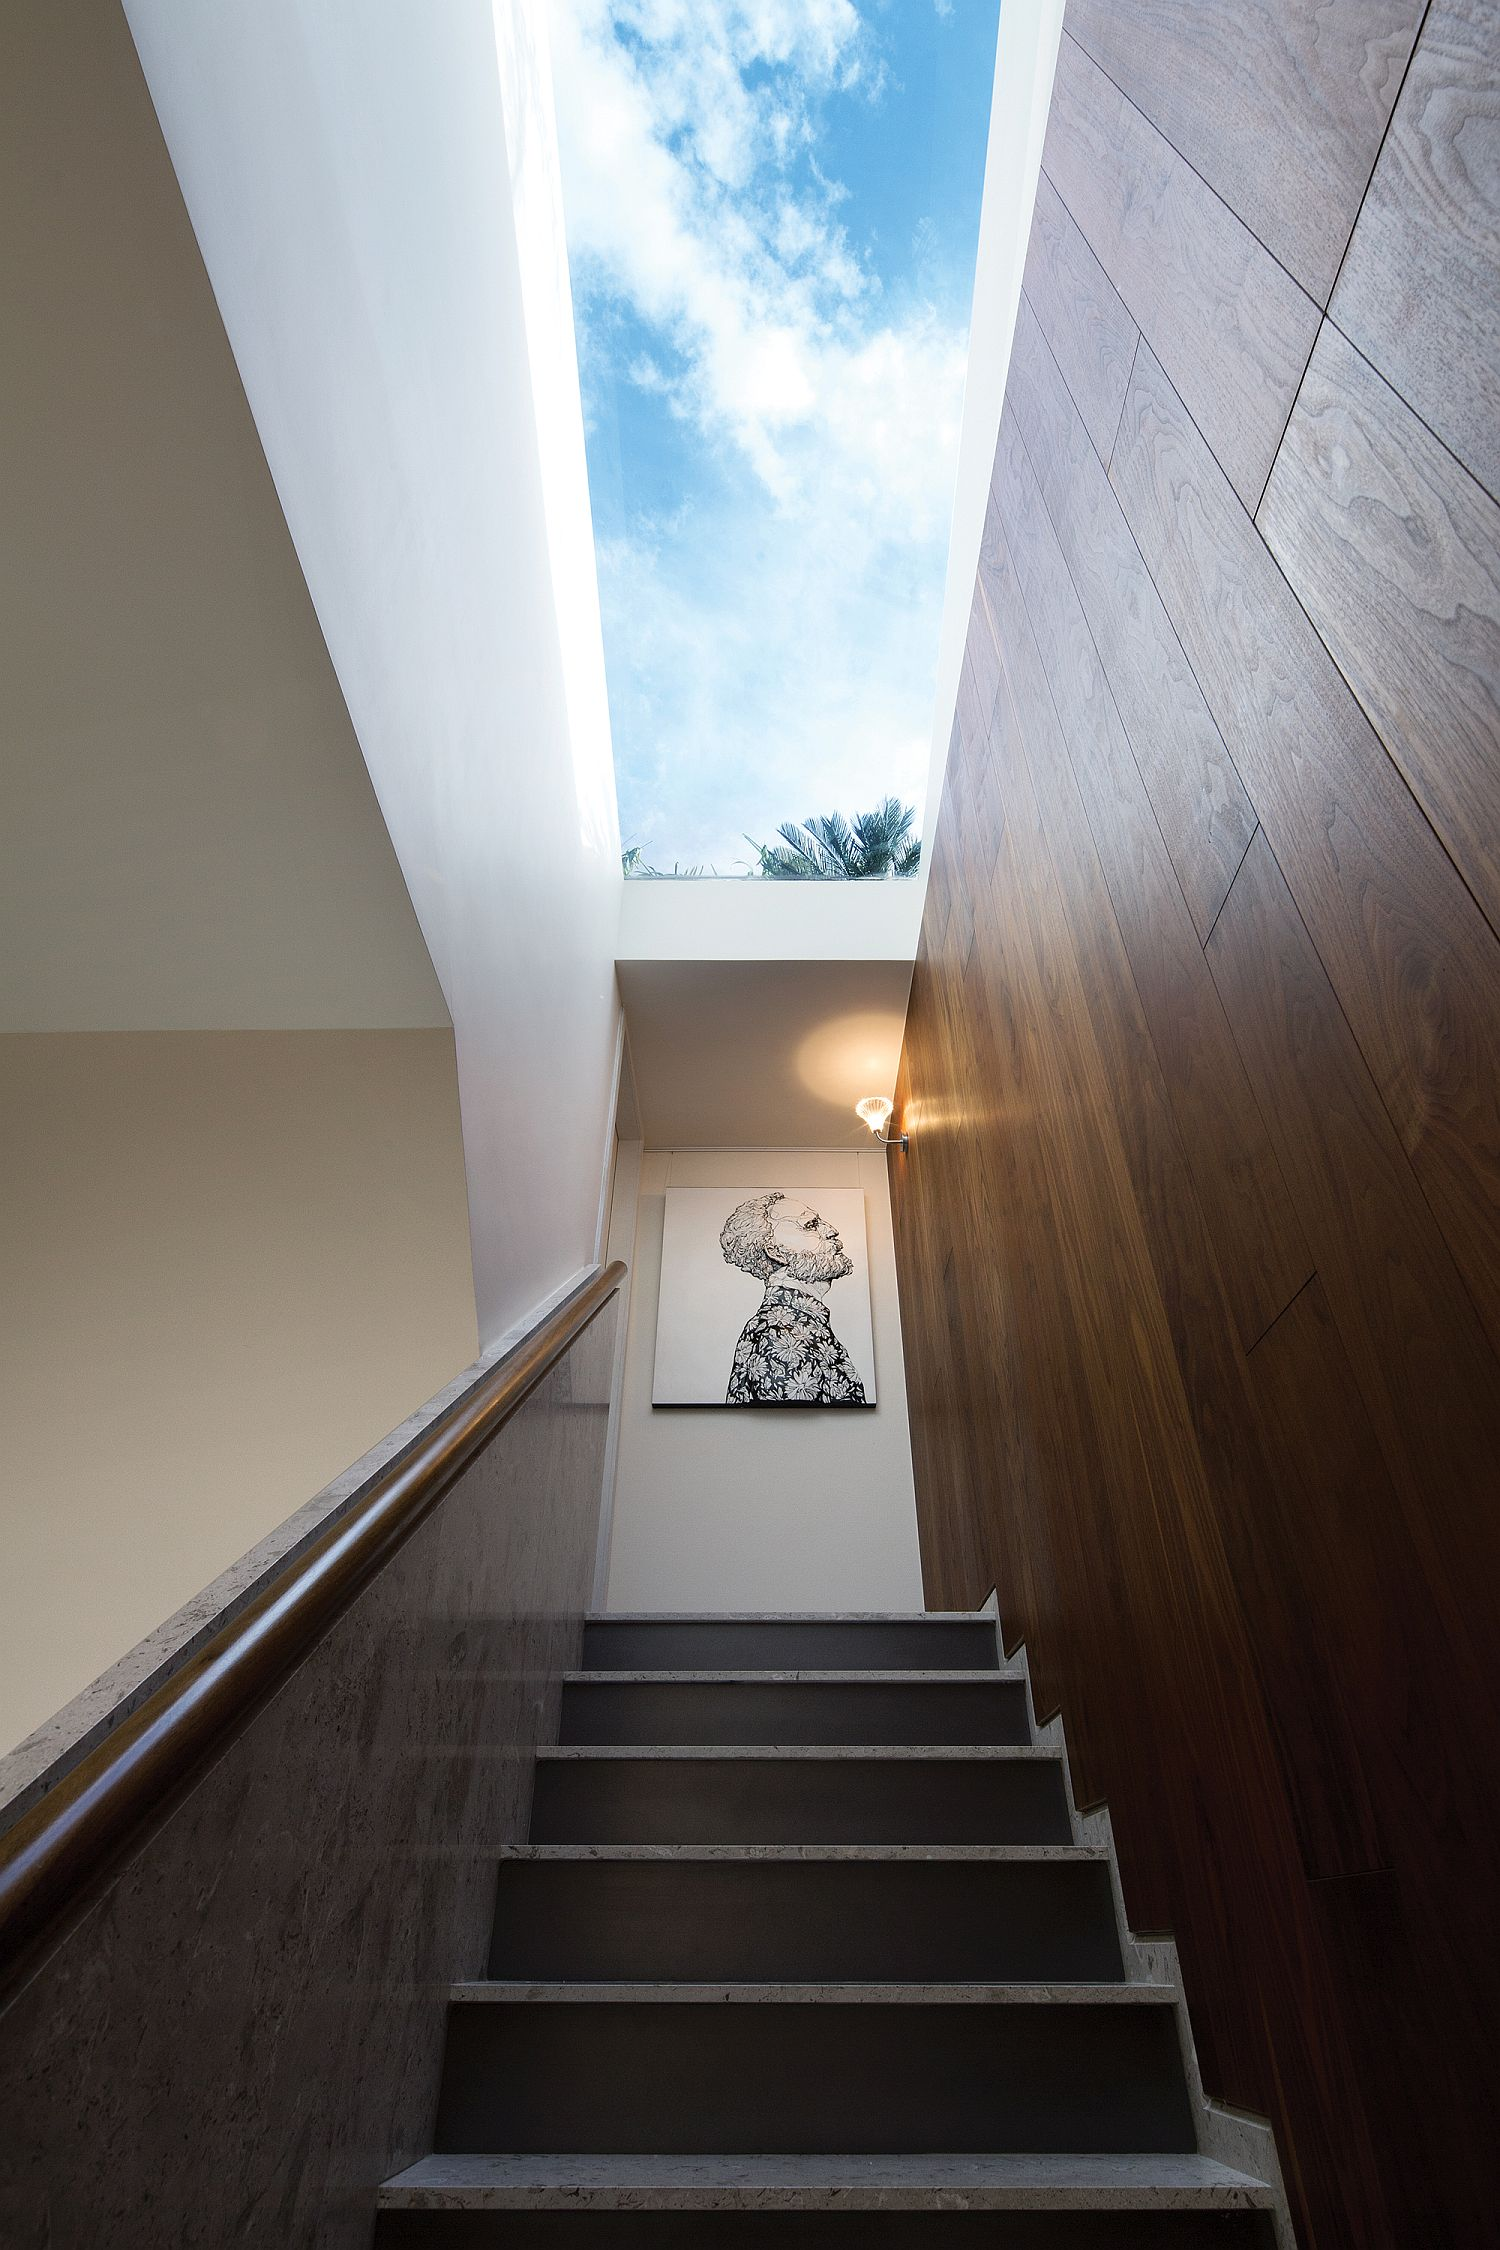 Skylight-pretty-much-brings-the-outdoors-inside-while-also-ushering-in-natural-light-84457